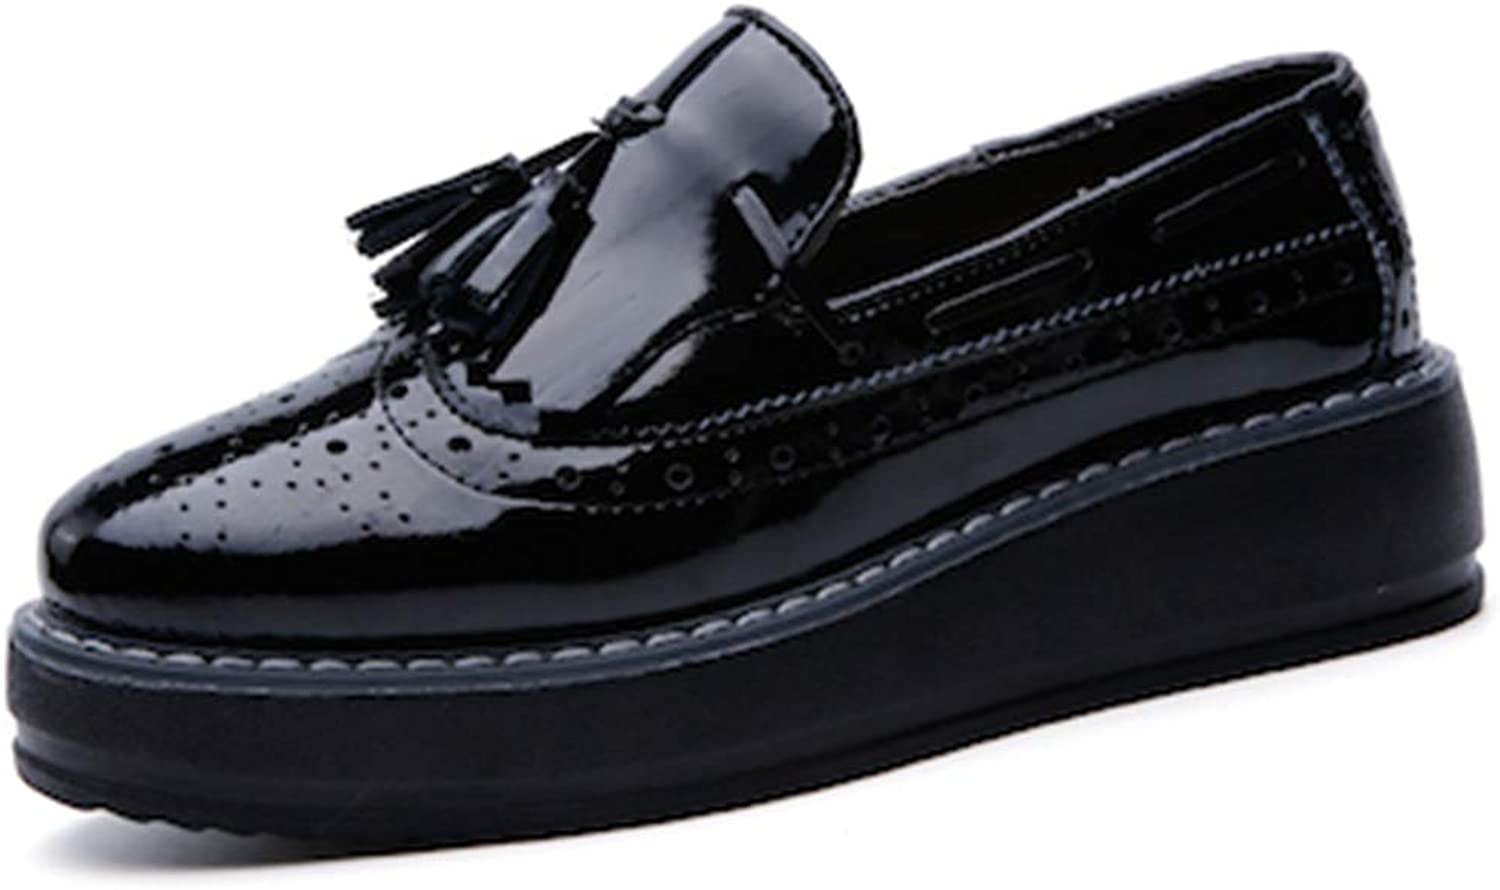 Women Flats Platform shoes Patent Leather Tassel Slip-on Pointed